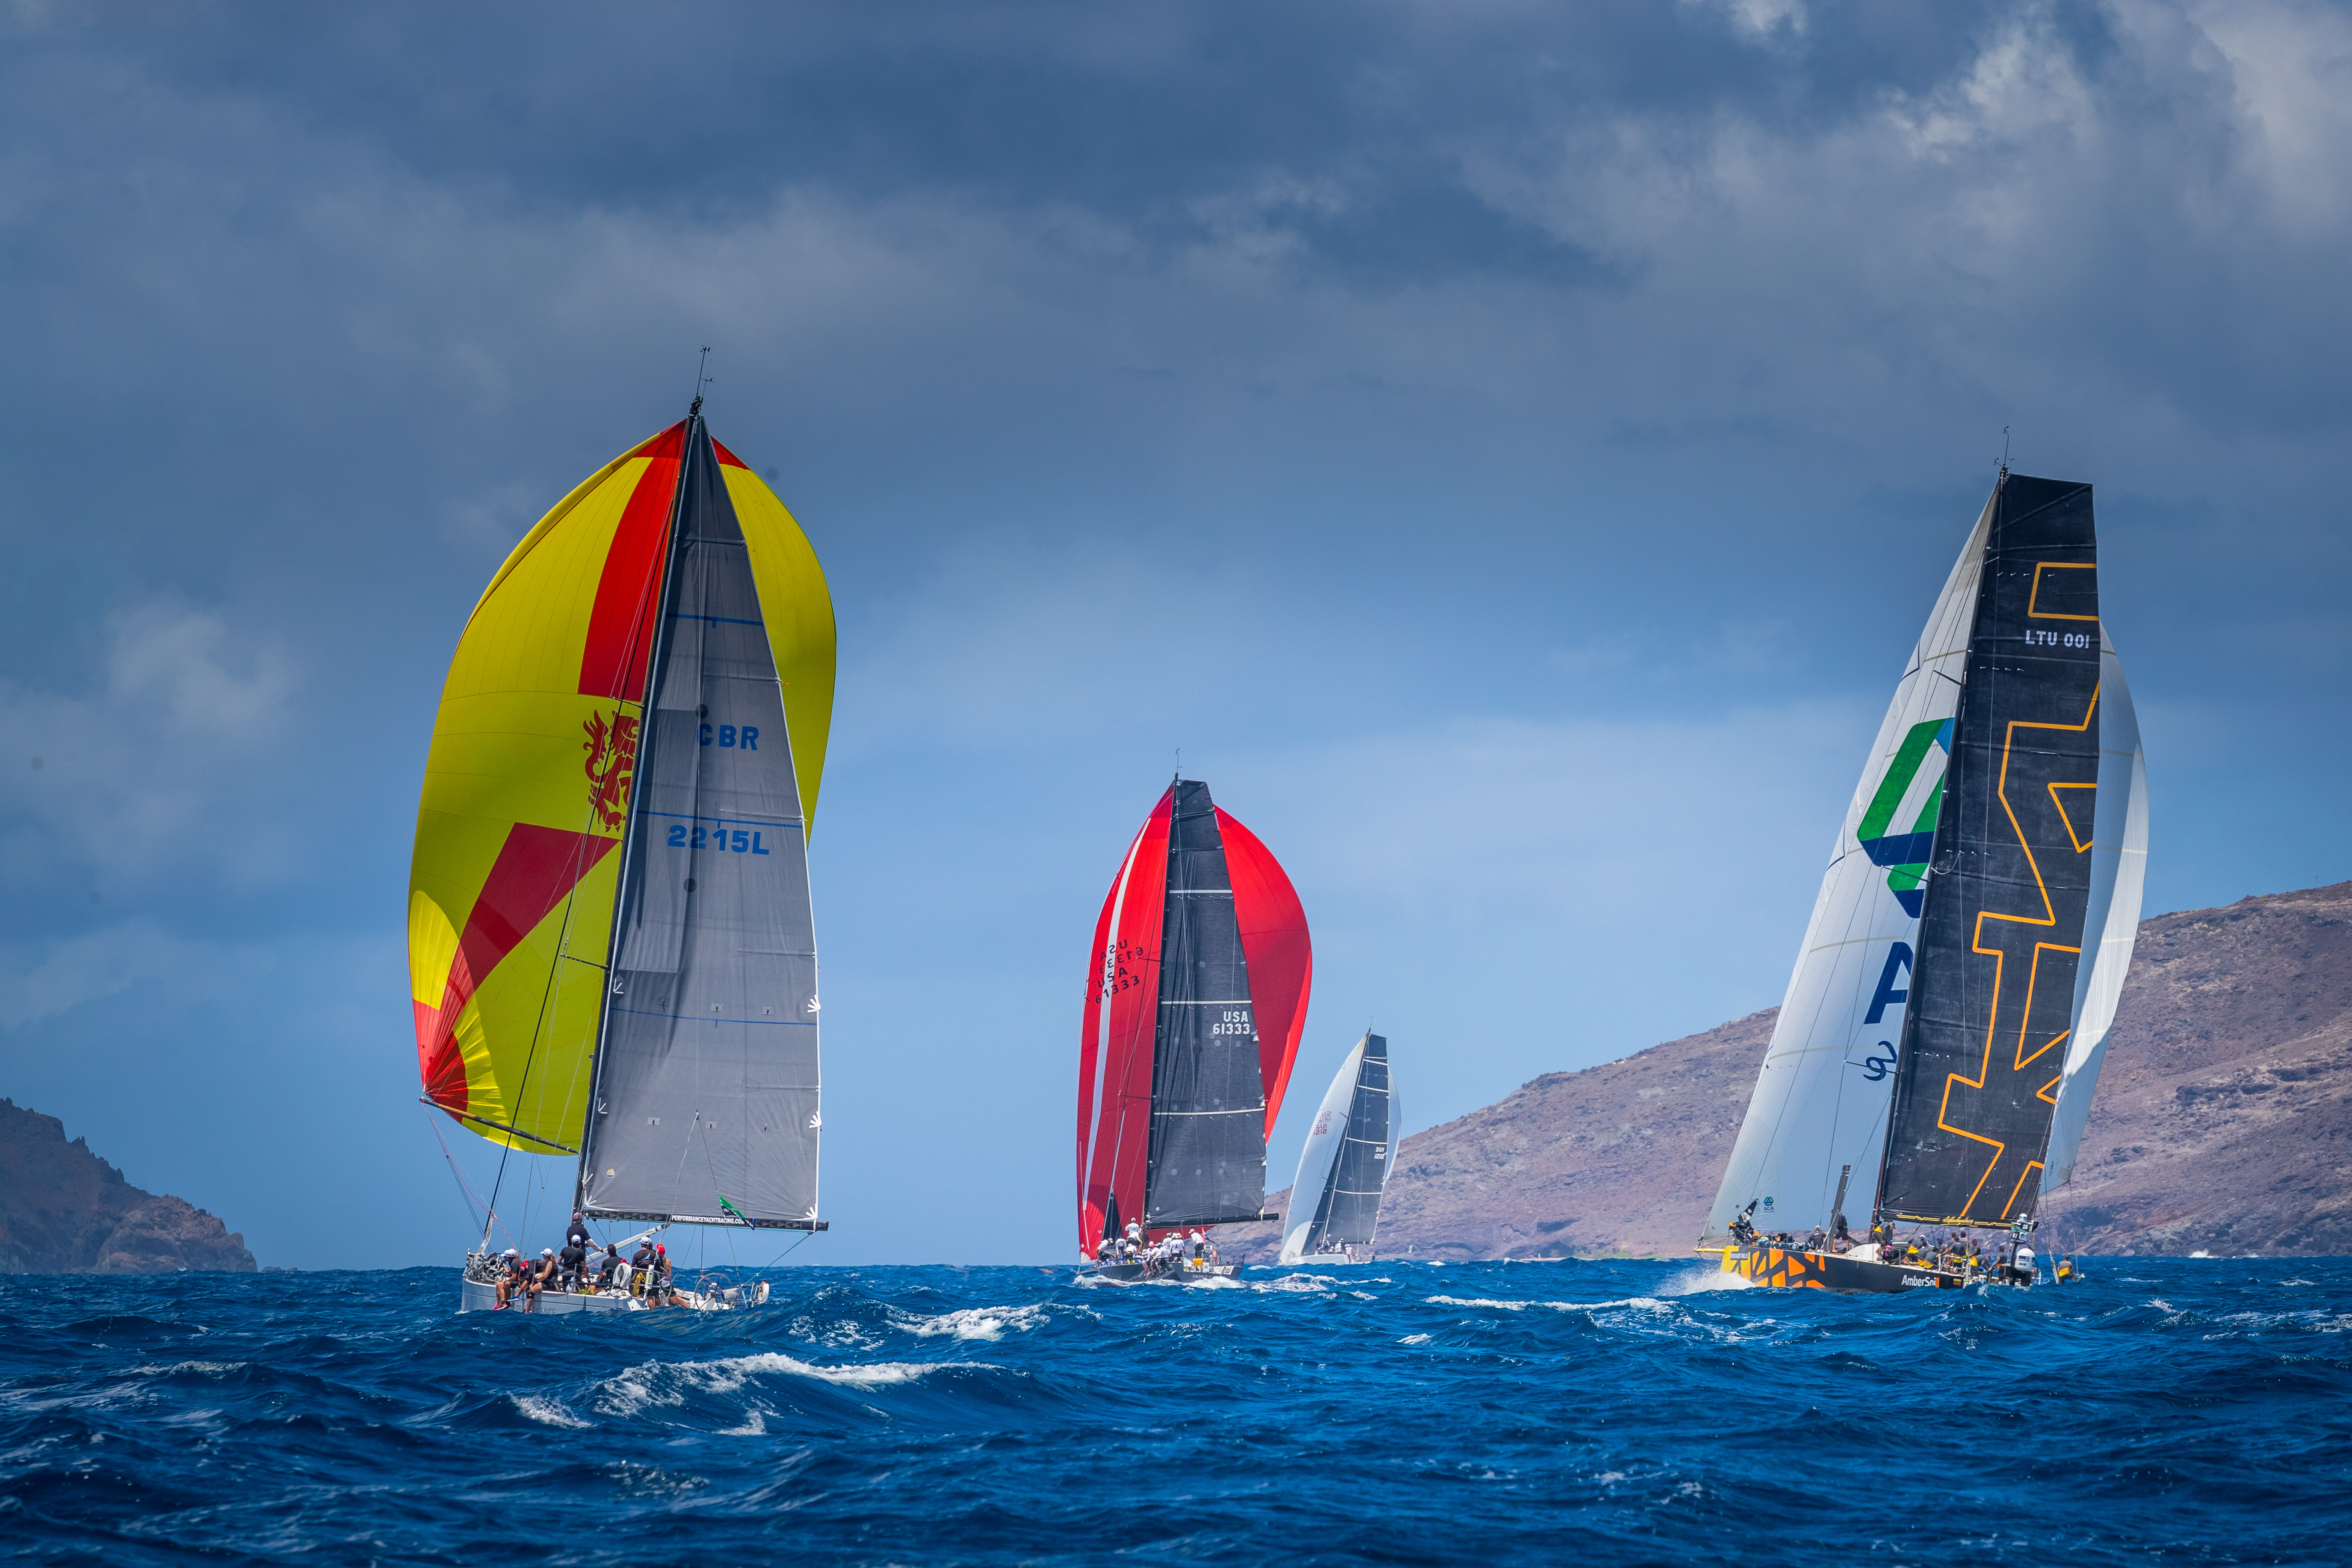 Les Voiles de St Barth Richard Mille (photo copyright: Christoper Jouany)